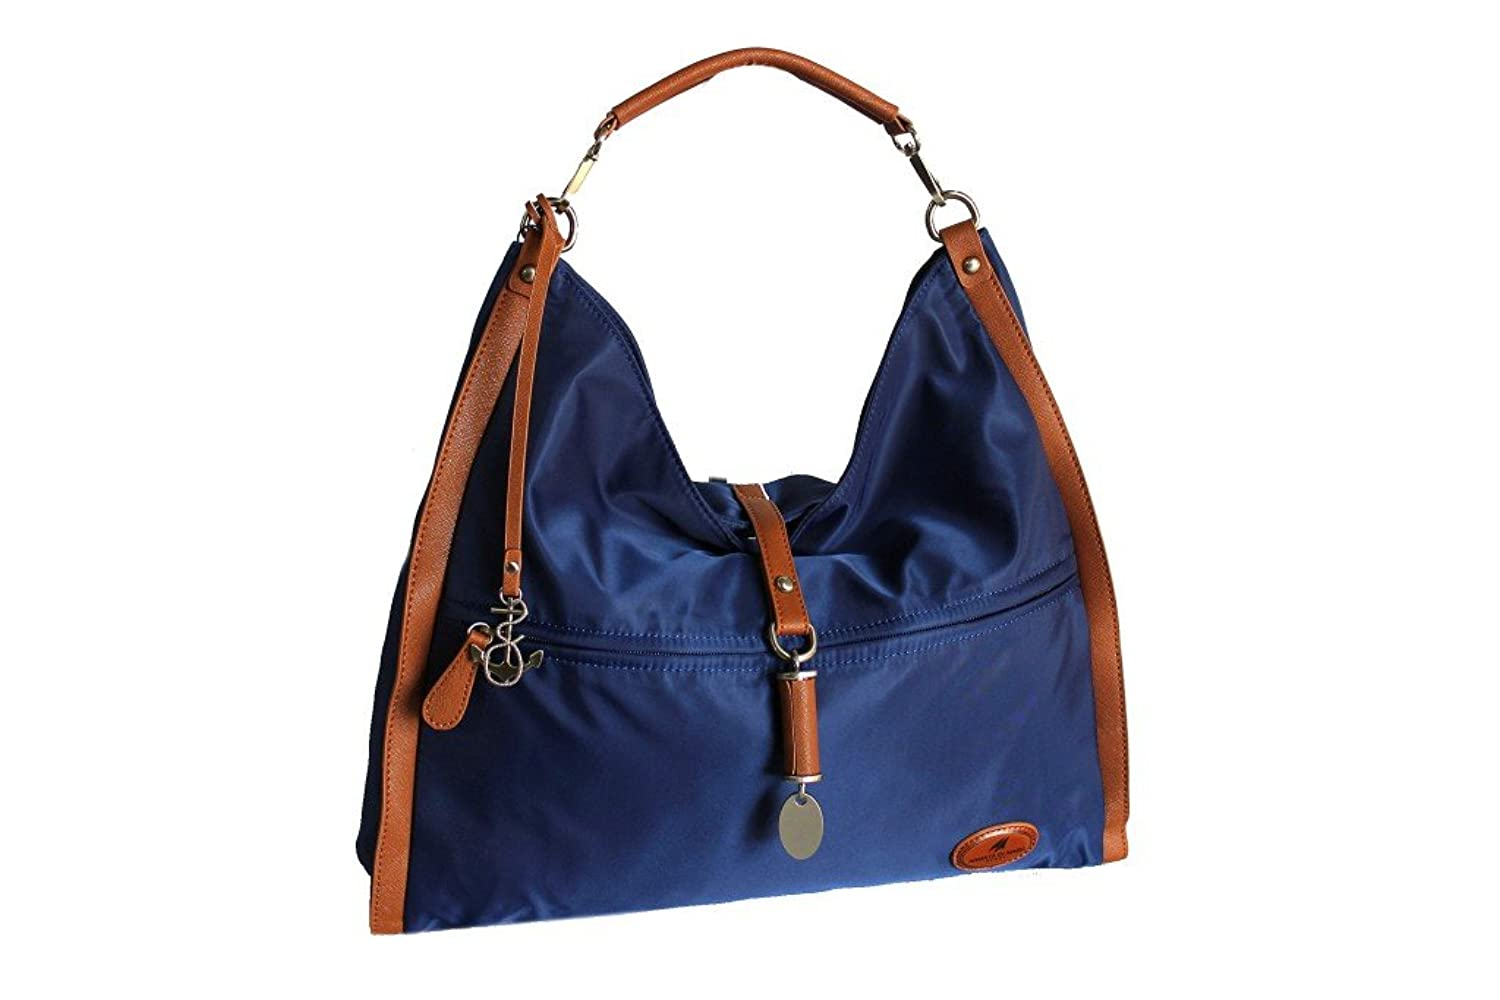 a shoulder bag beach bag woman Army 470 blue